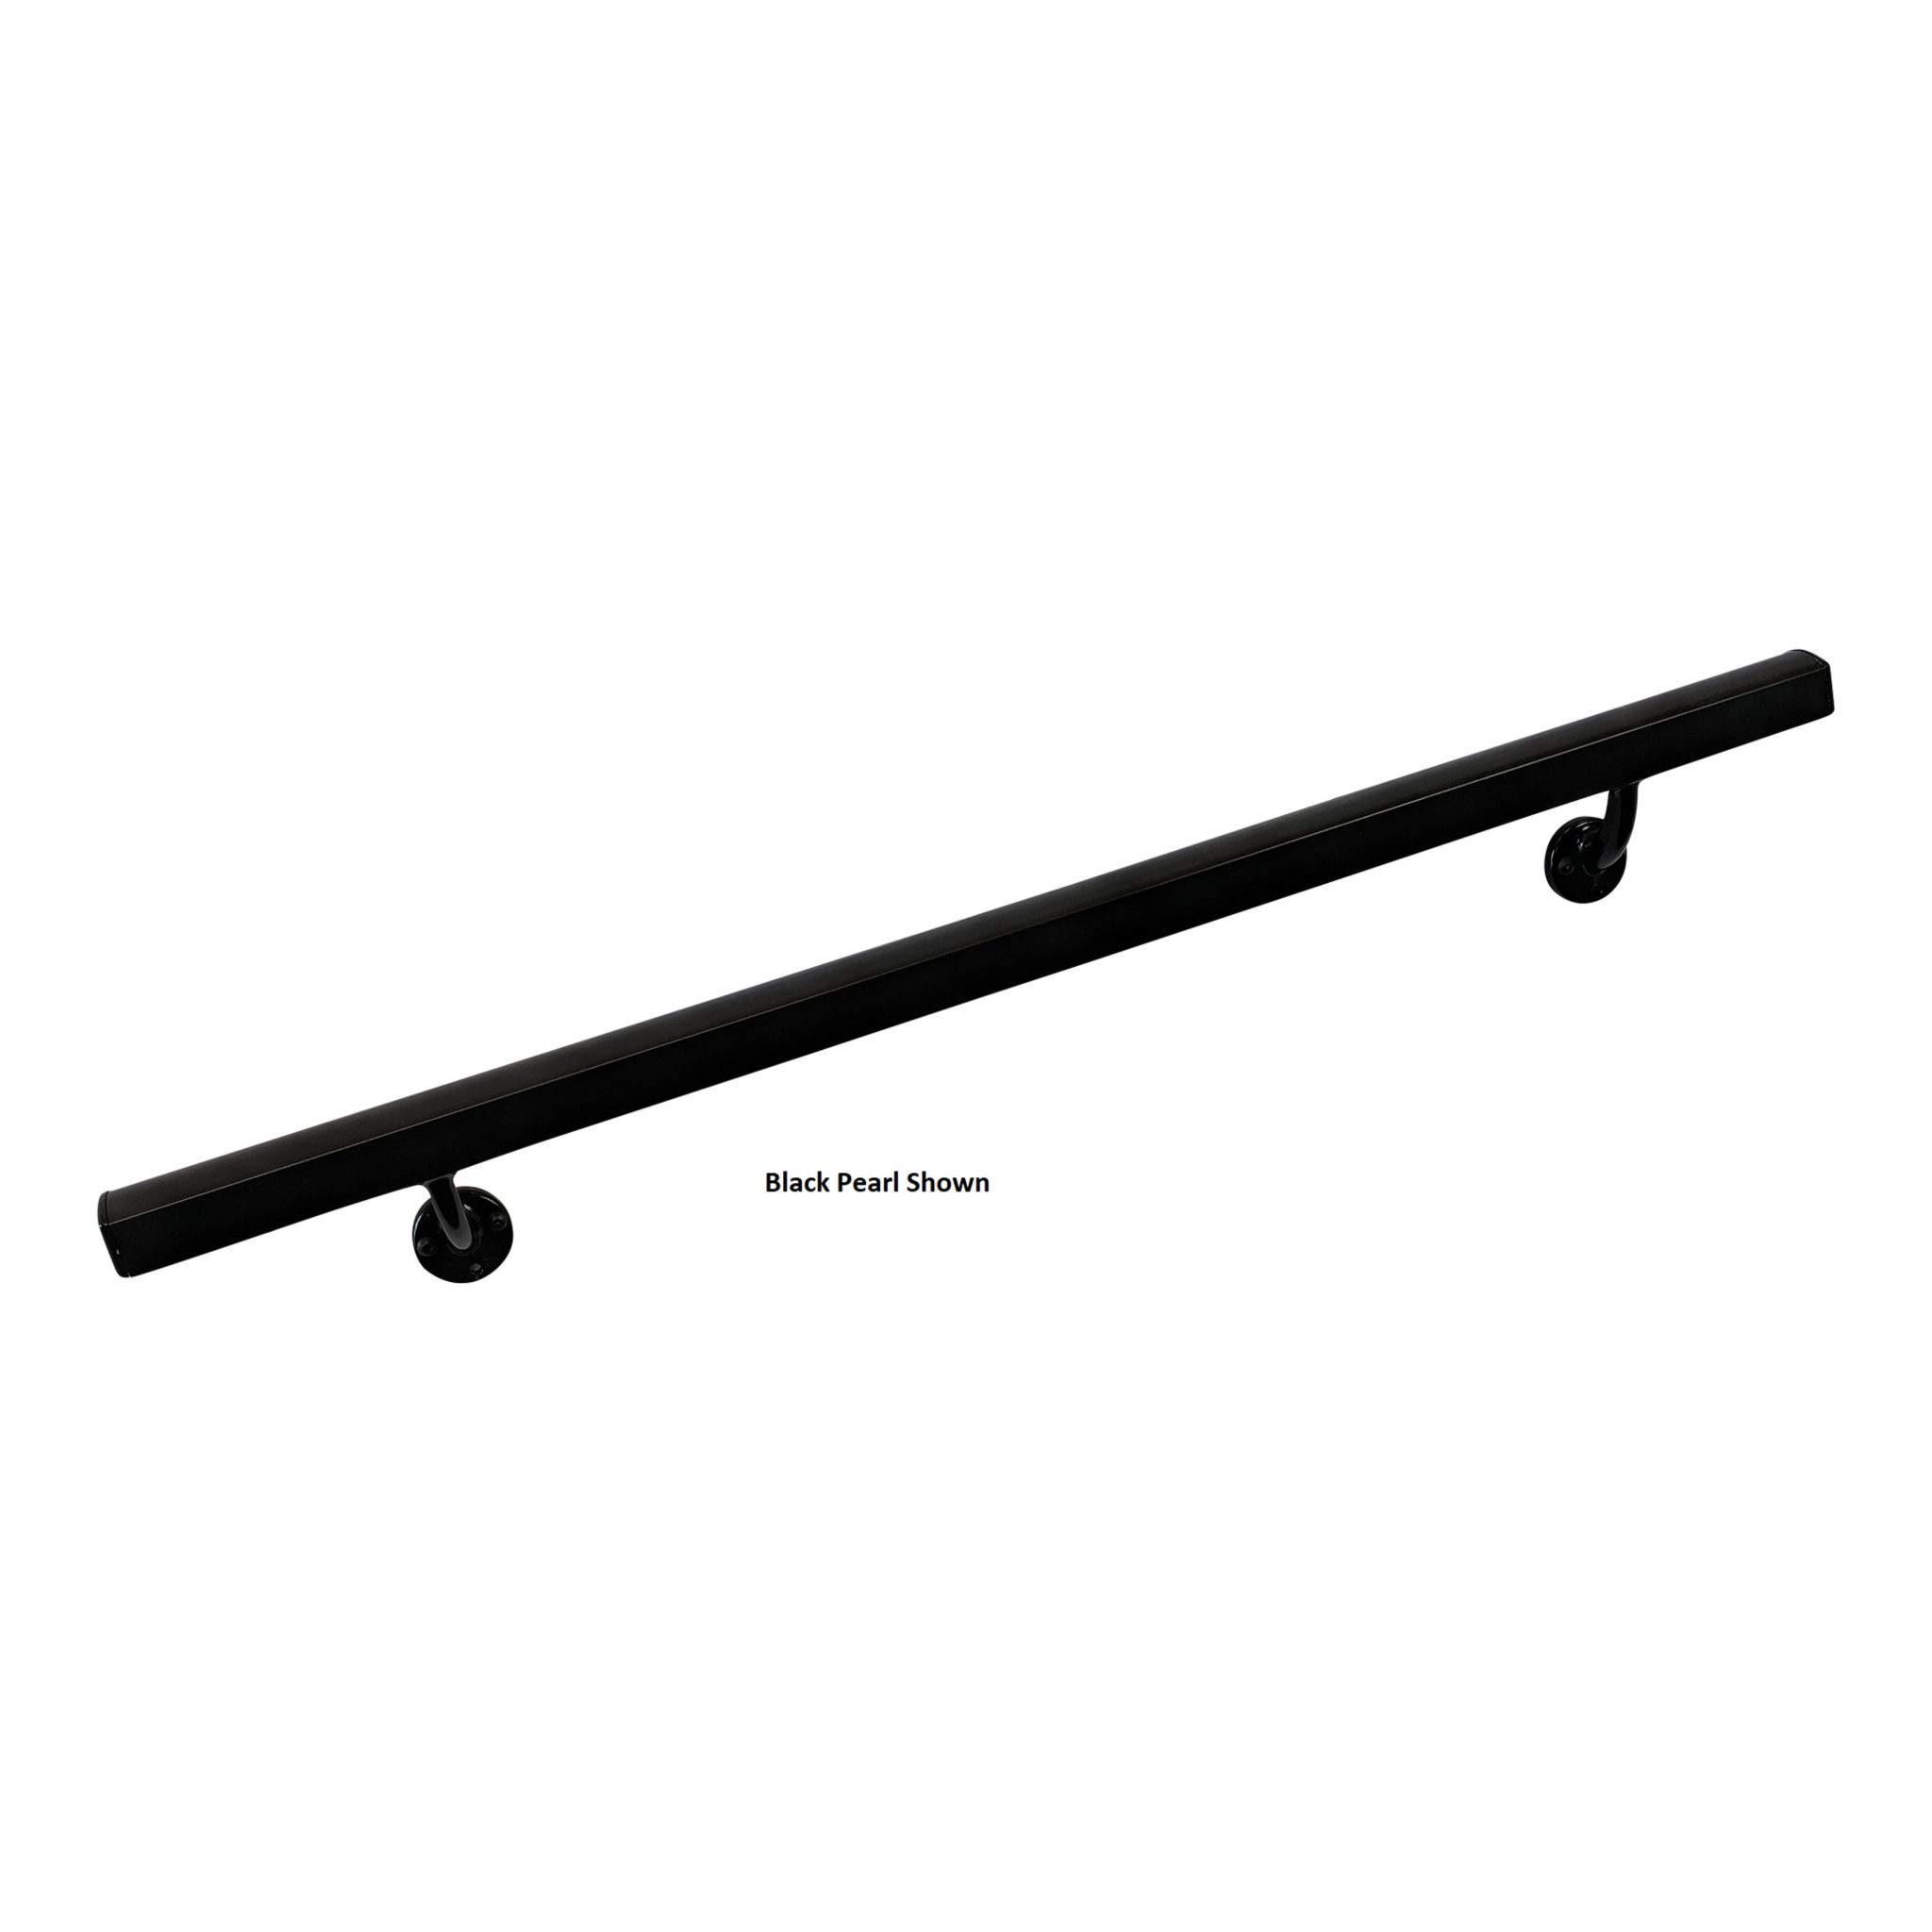 Aluminum Handrail Direct AHR 4' Handrail Section with mounts - White